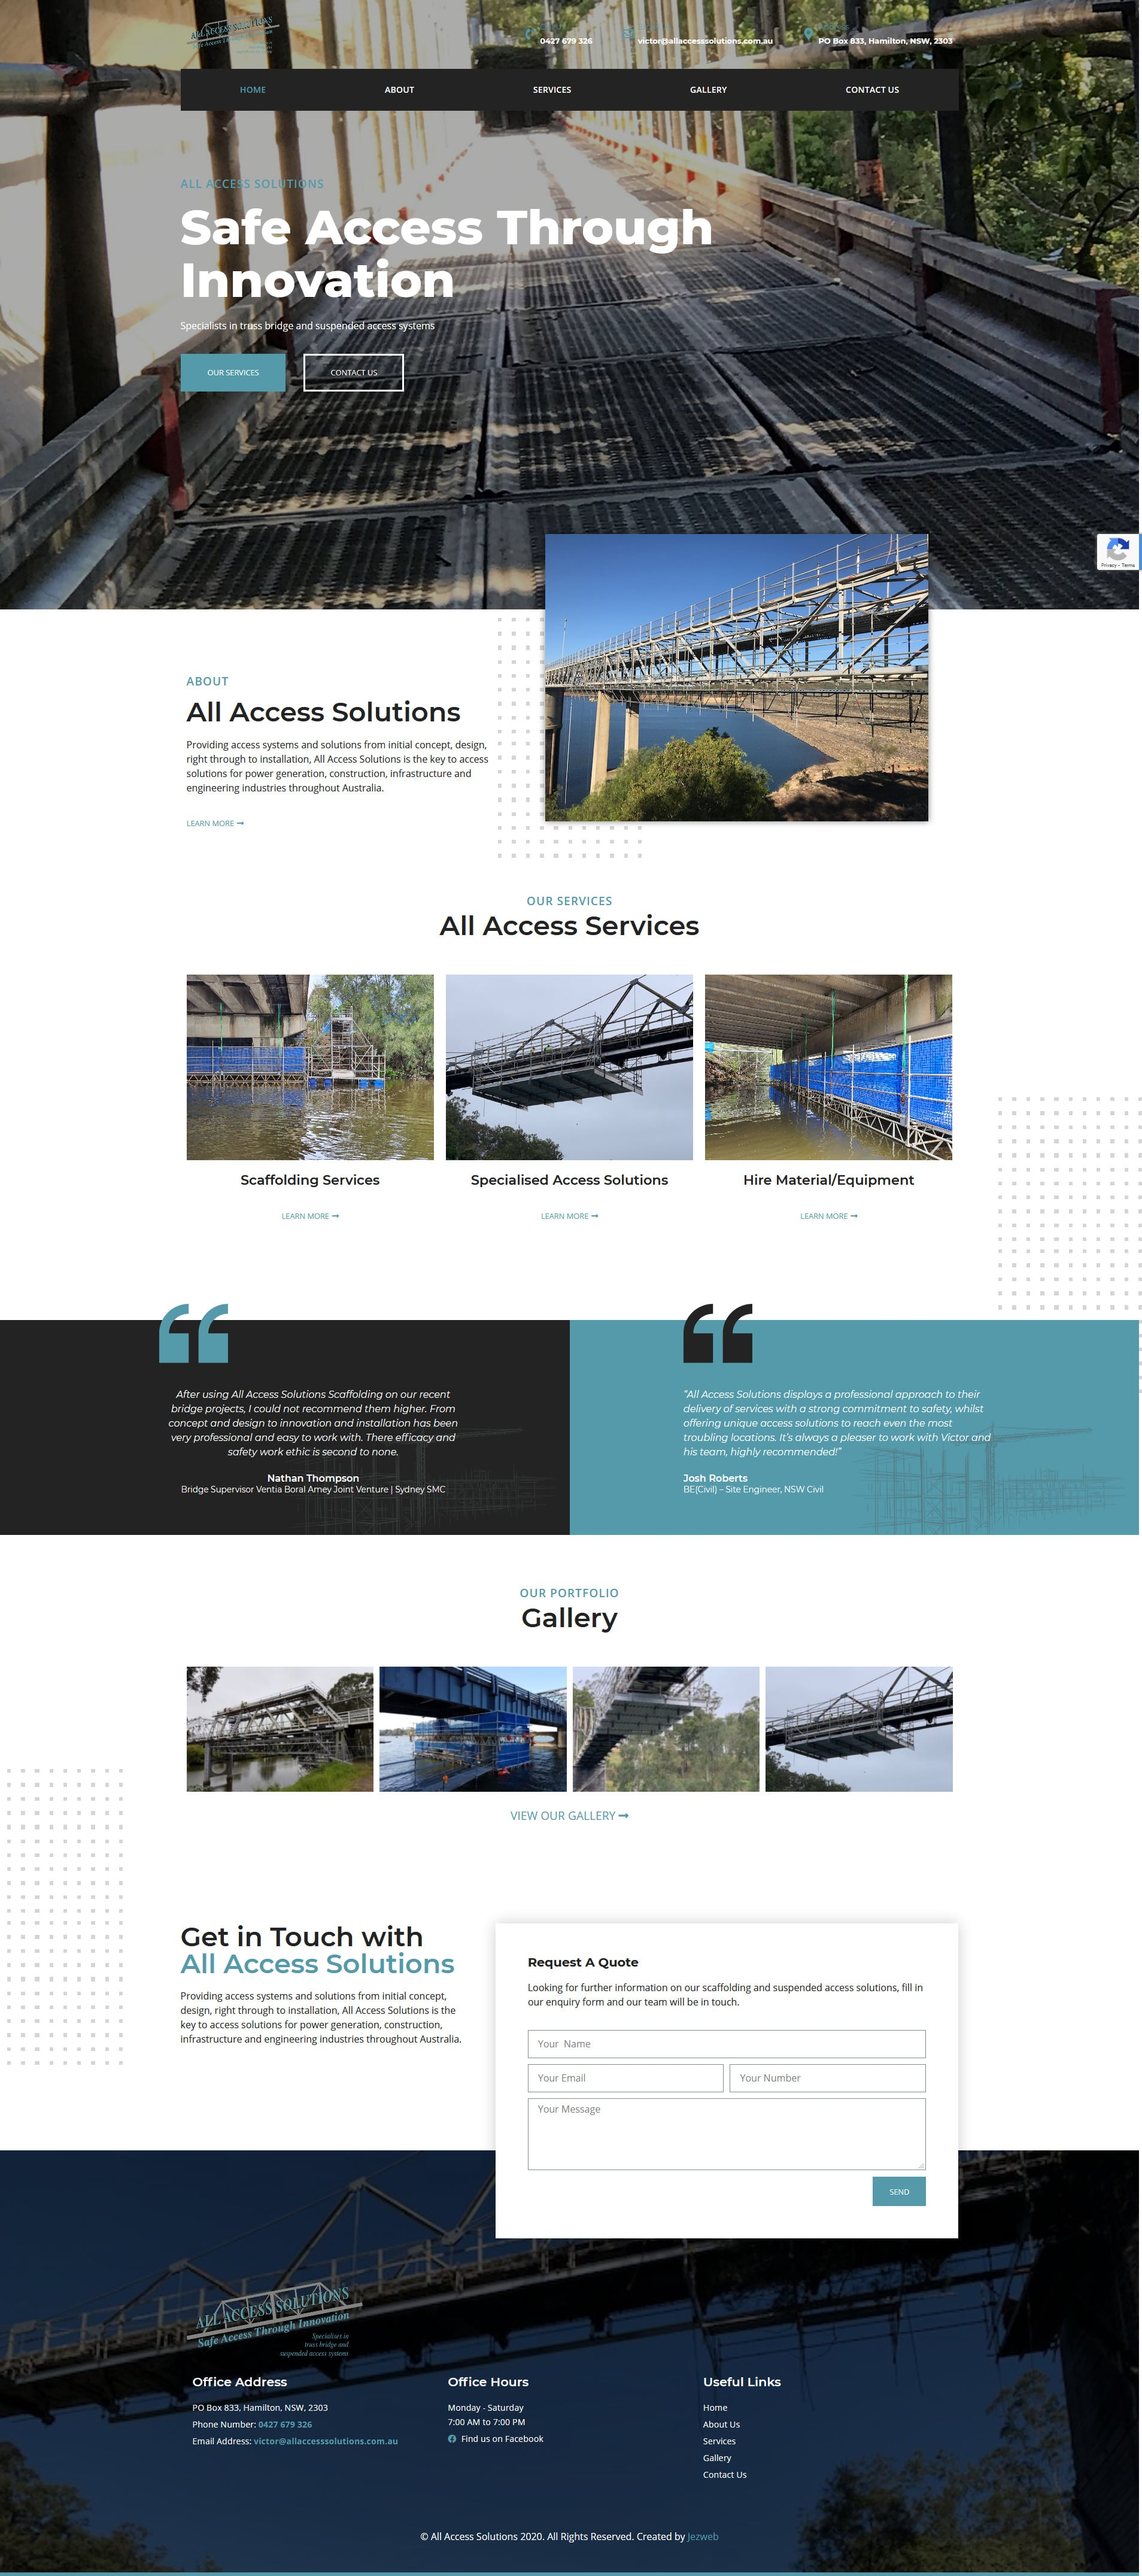 All Access Solutions -